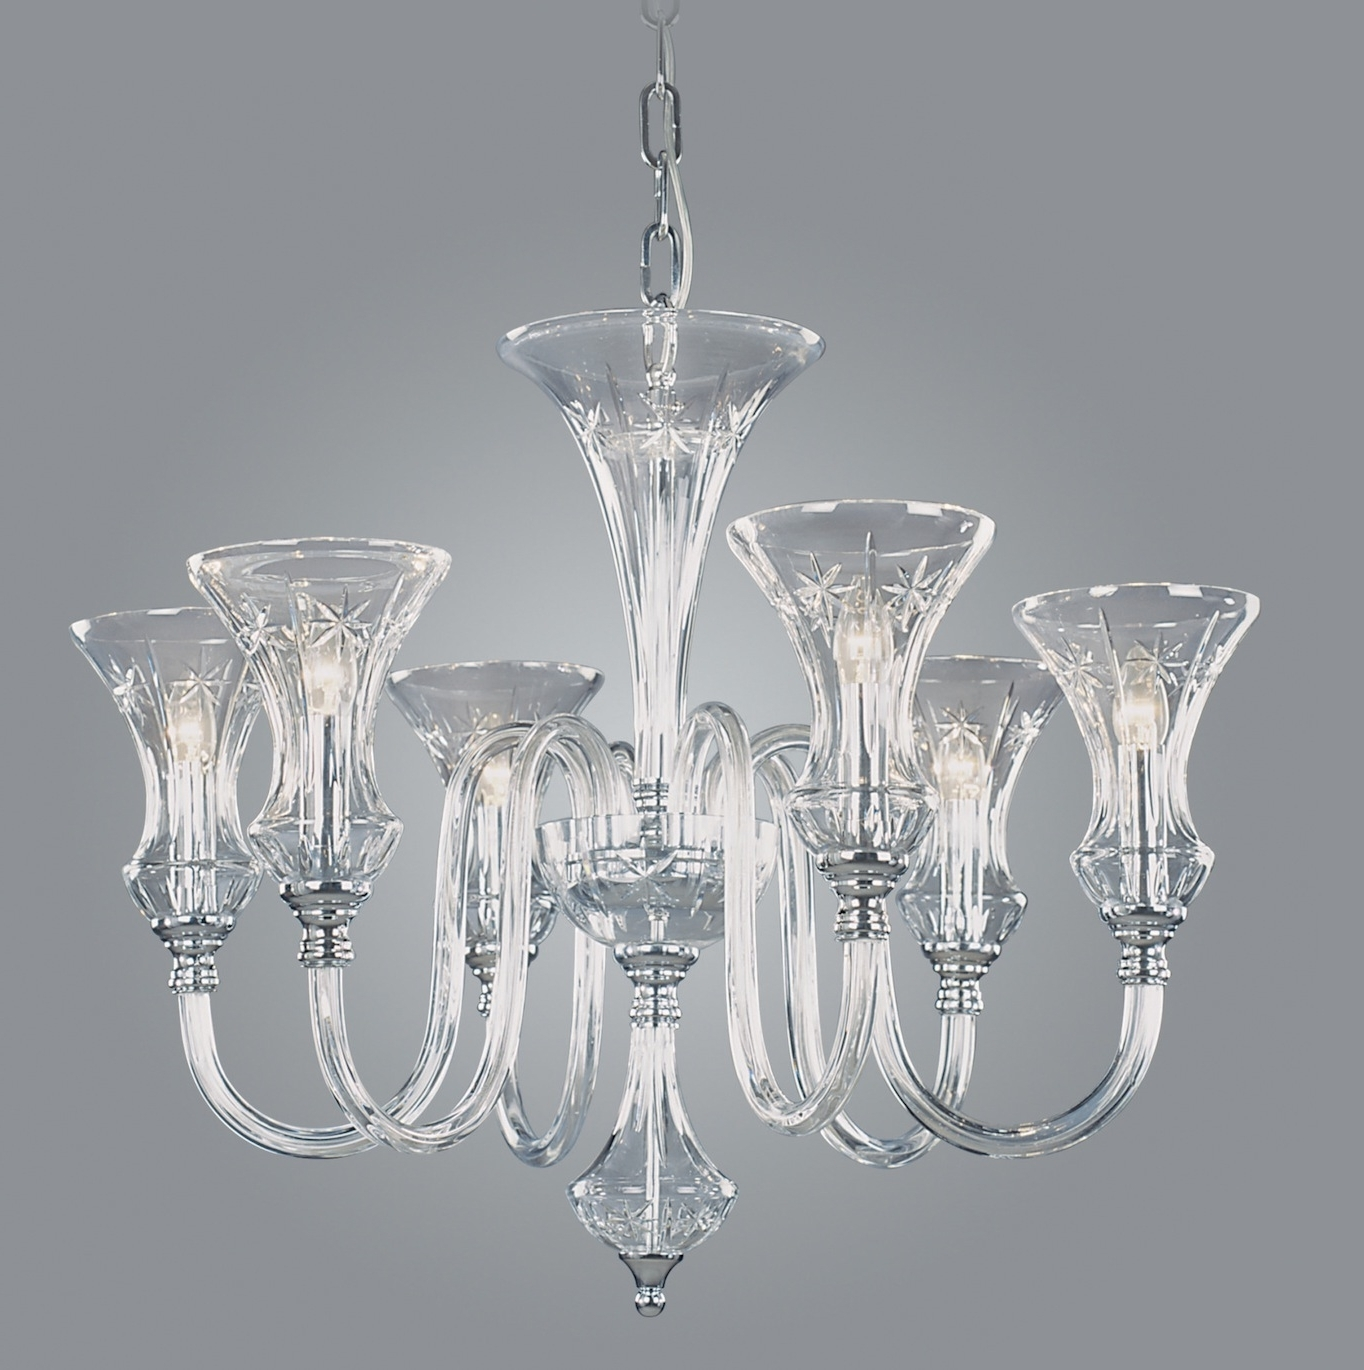 Widely Used Contemporary Modern Chandeliers Throughout Modern Contemporary Crystal Chandeliers (View 13 of 20)